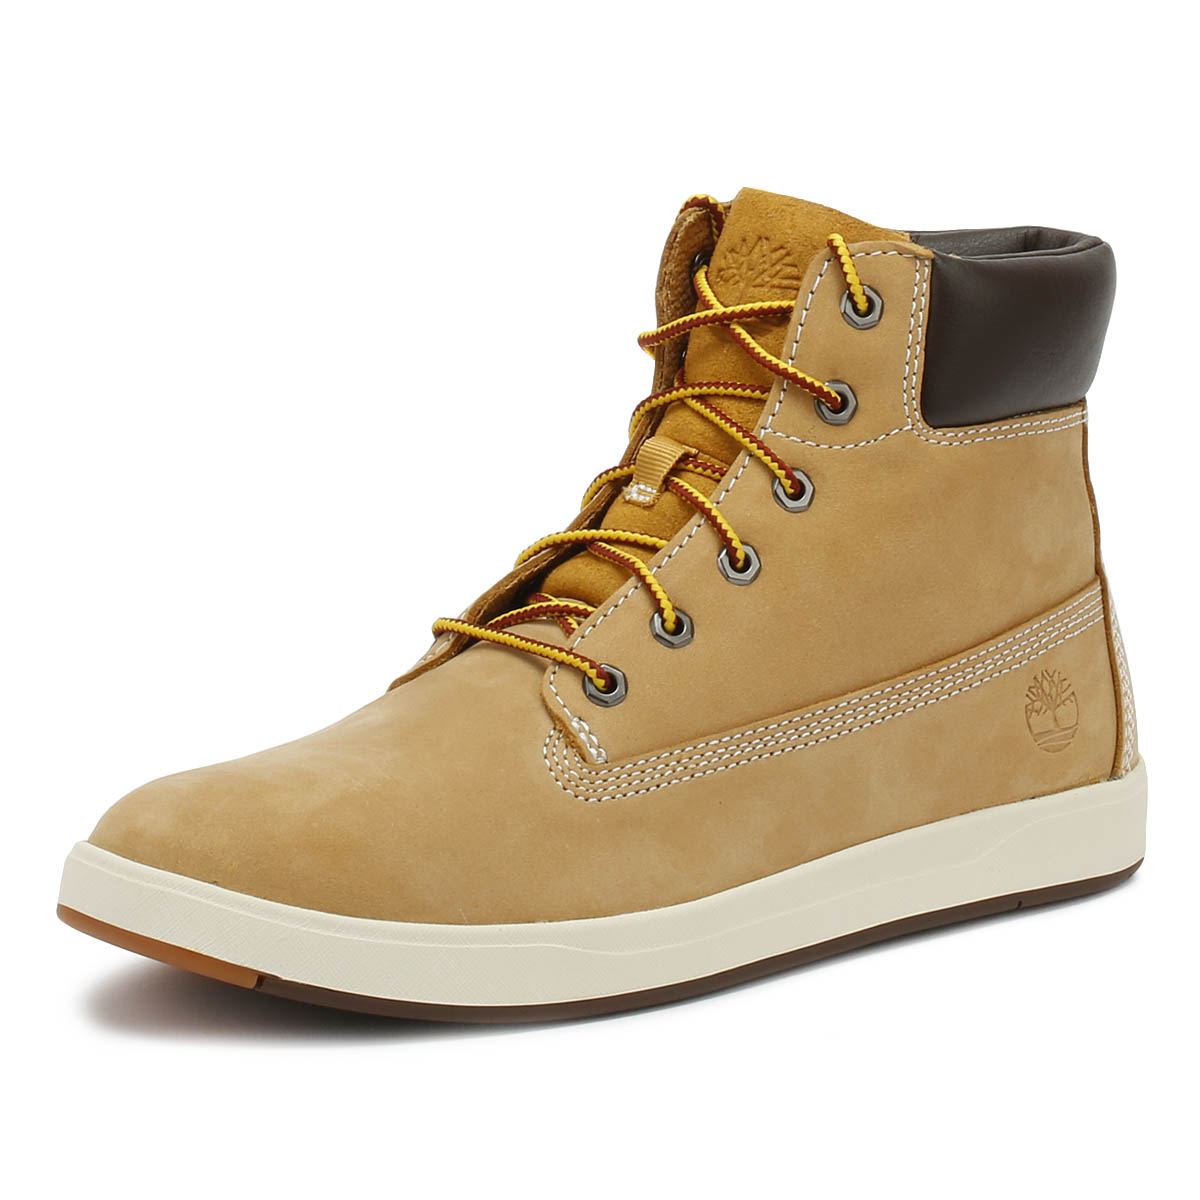 Details about Timberland Junior 6 Inch Boots Wheat Davis Square Leather Kids Winter Shoes